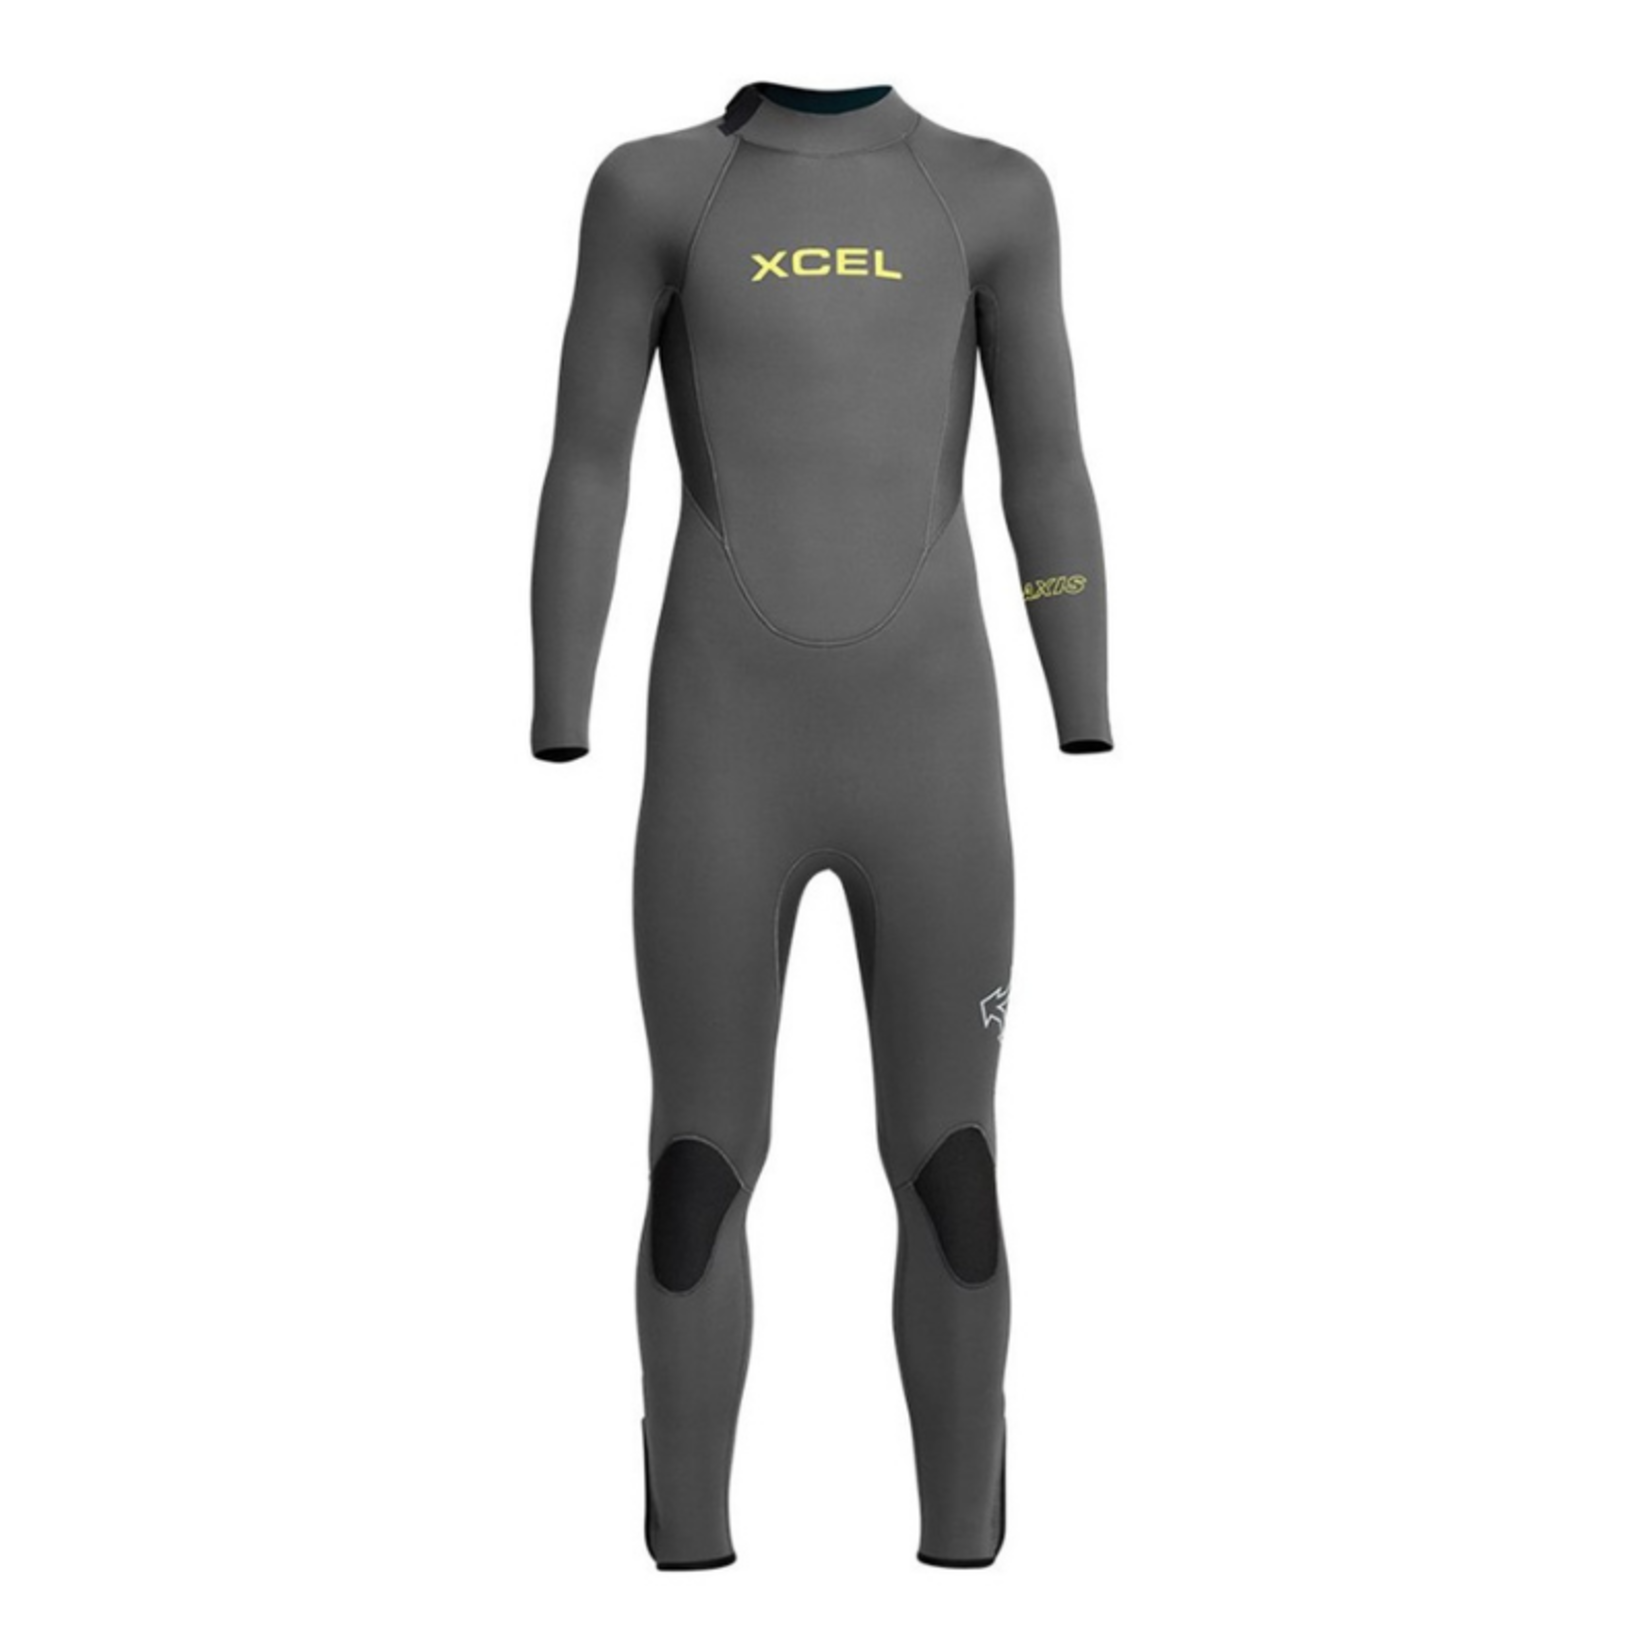 XCEL XCEL Youth Axis 5/4mm Back Zip Wetsuit.